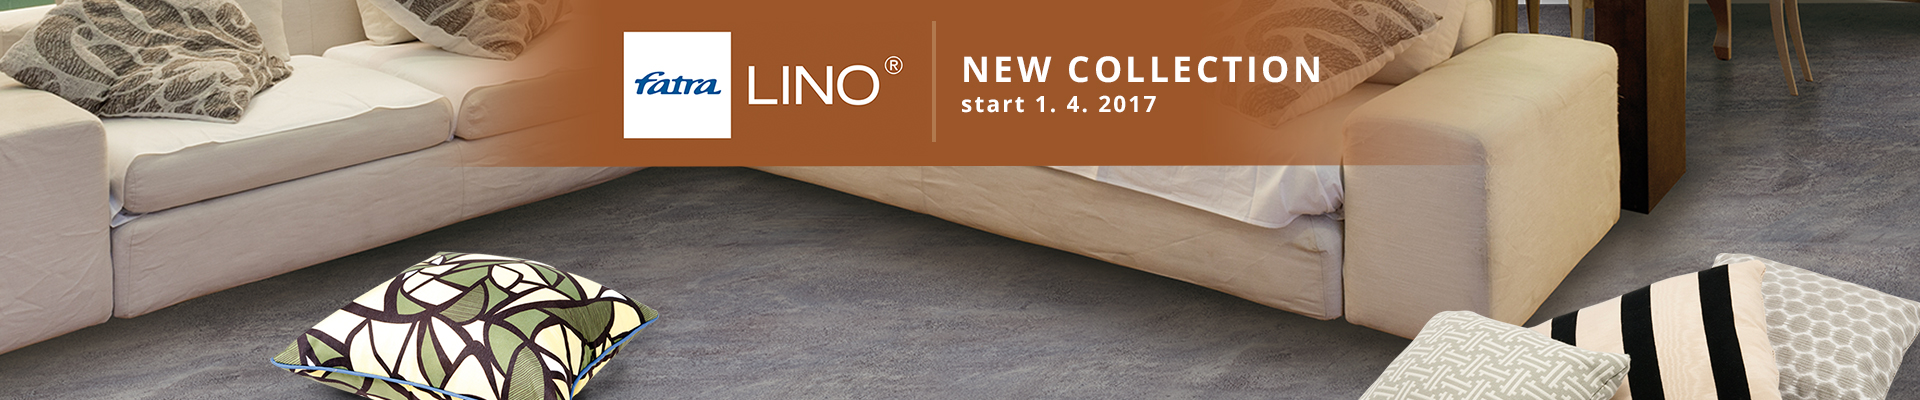 Lino – new collection